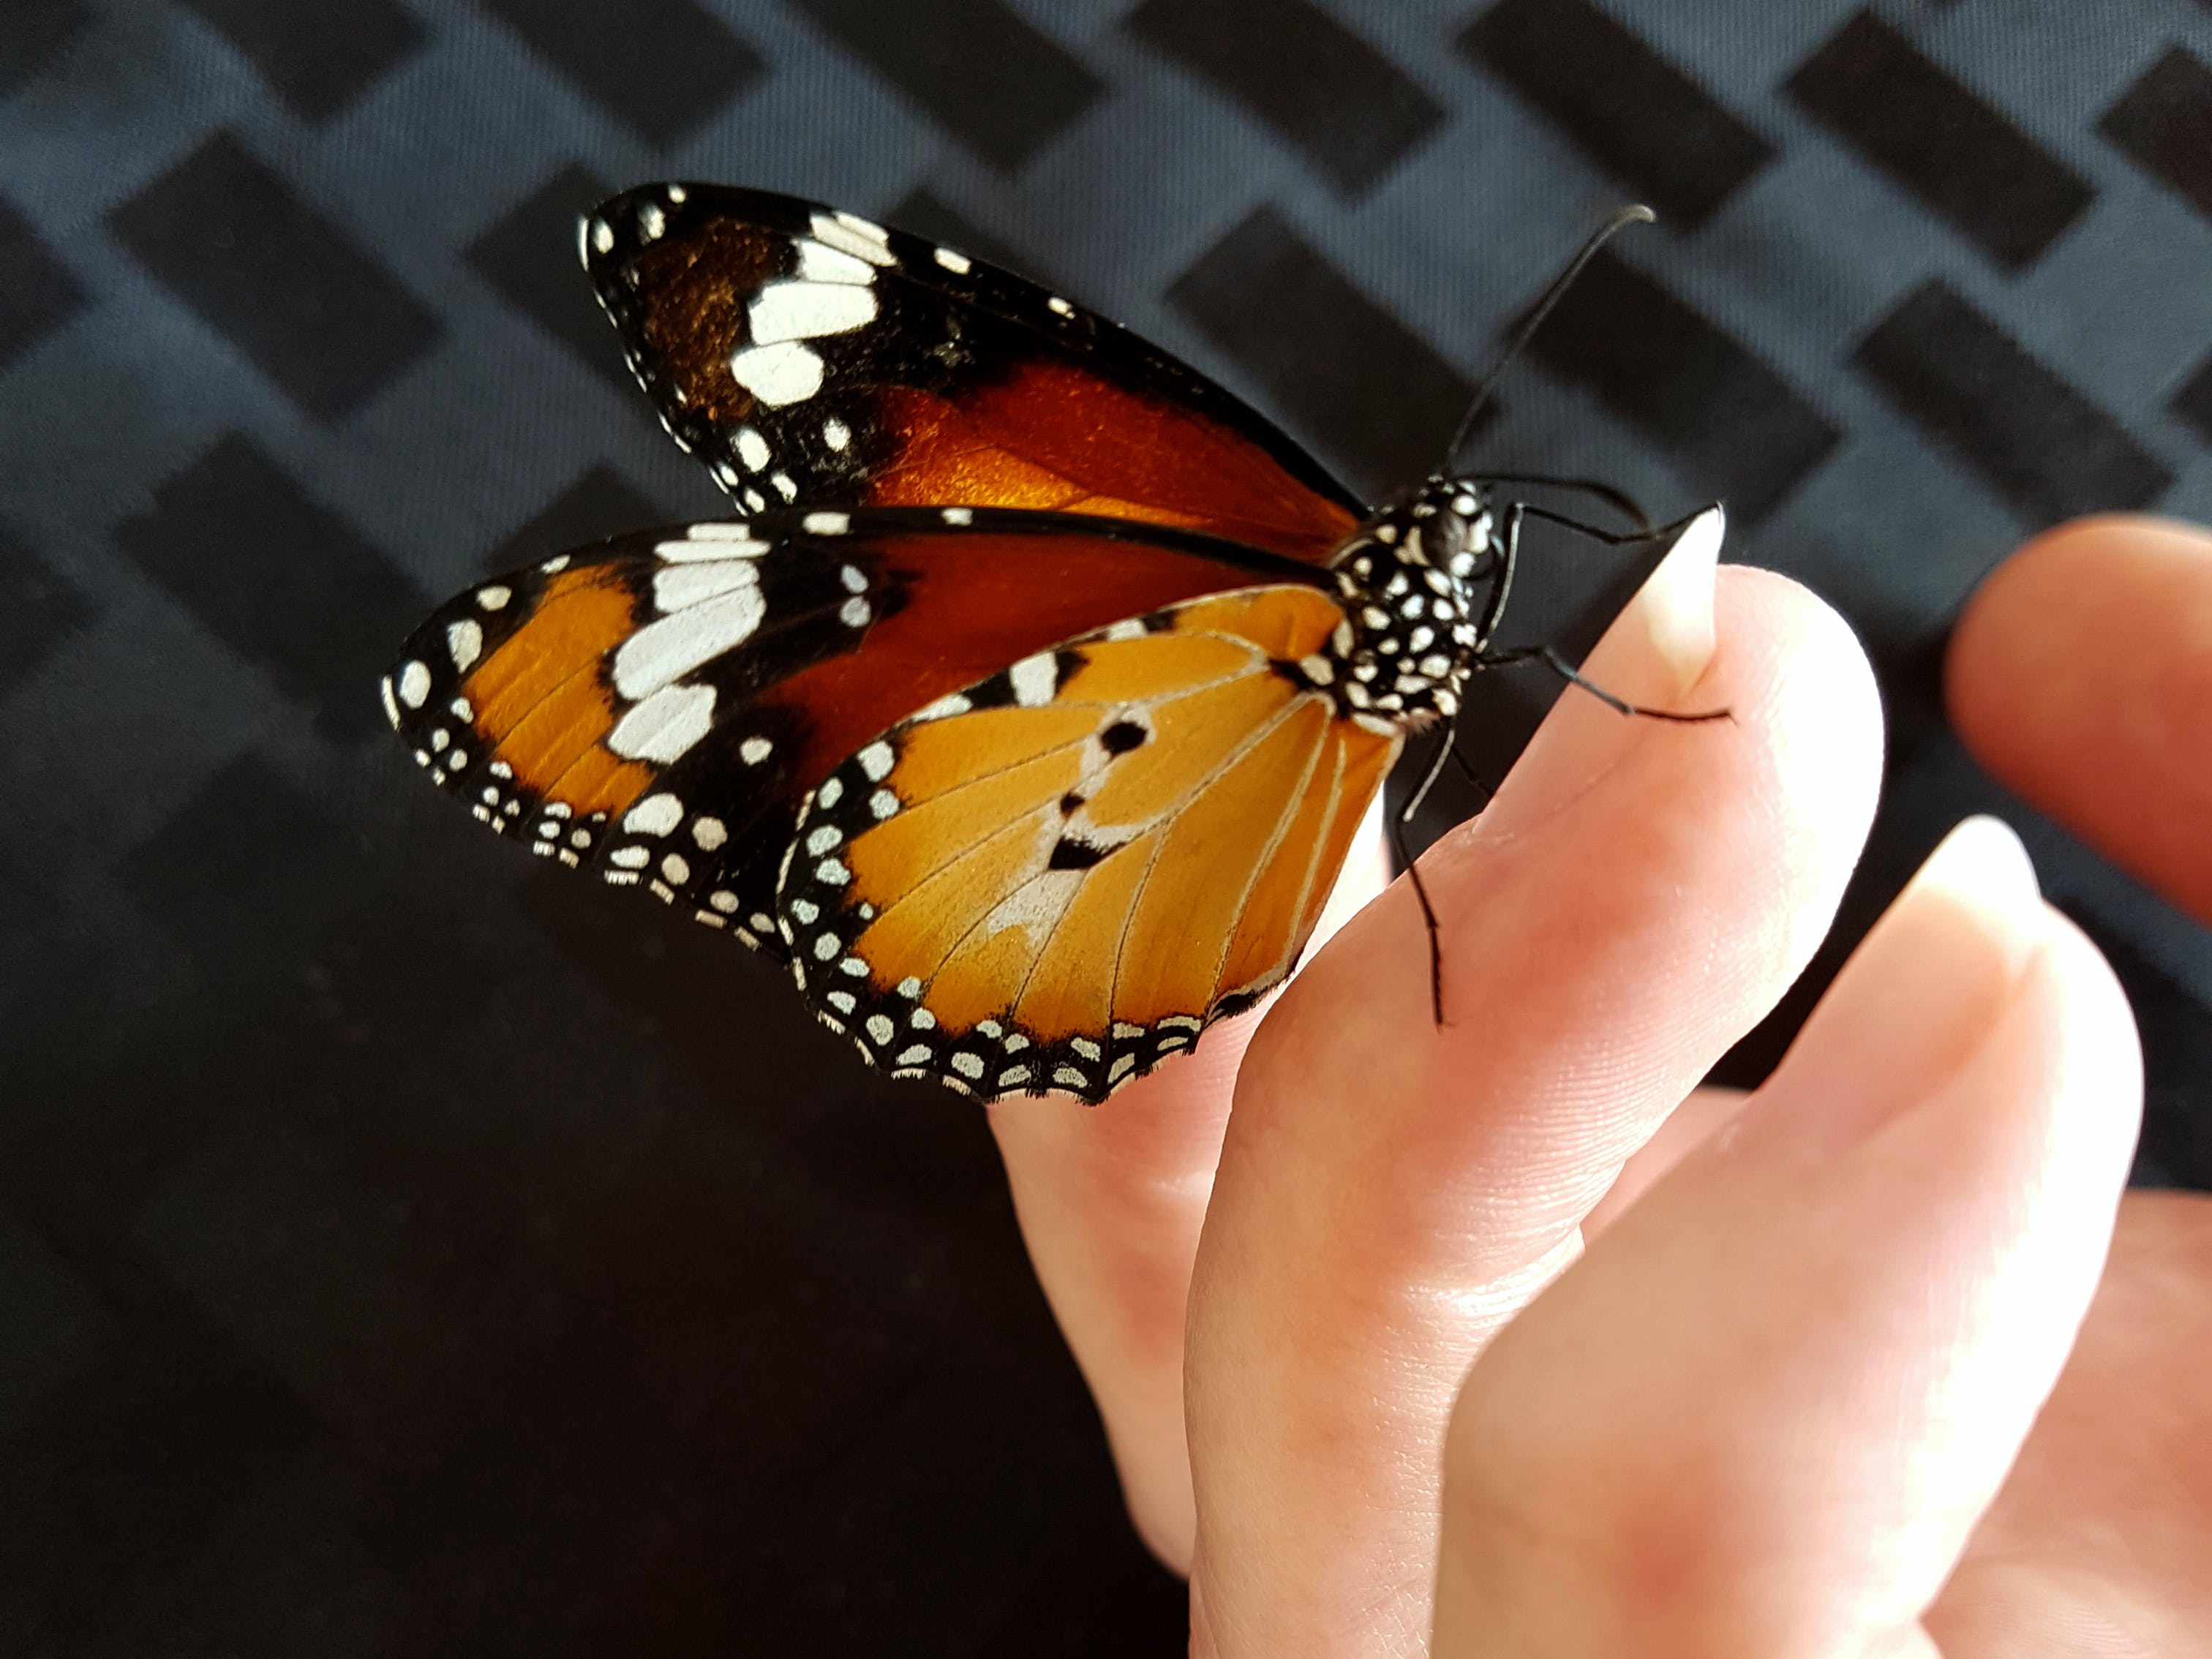 Free stock photo of Close up of butterfly on finger